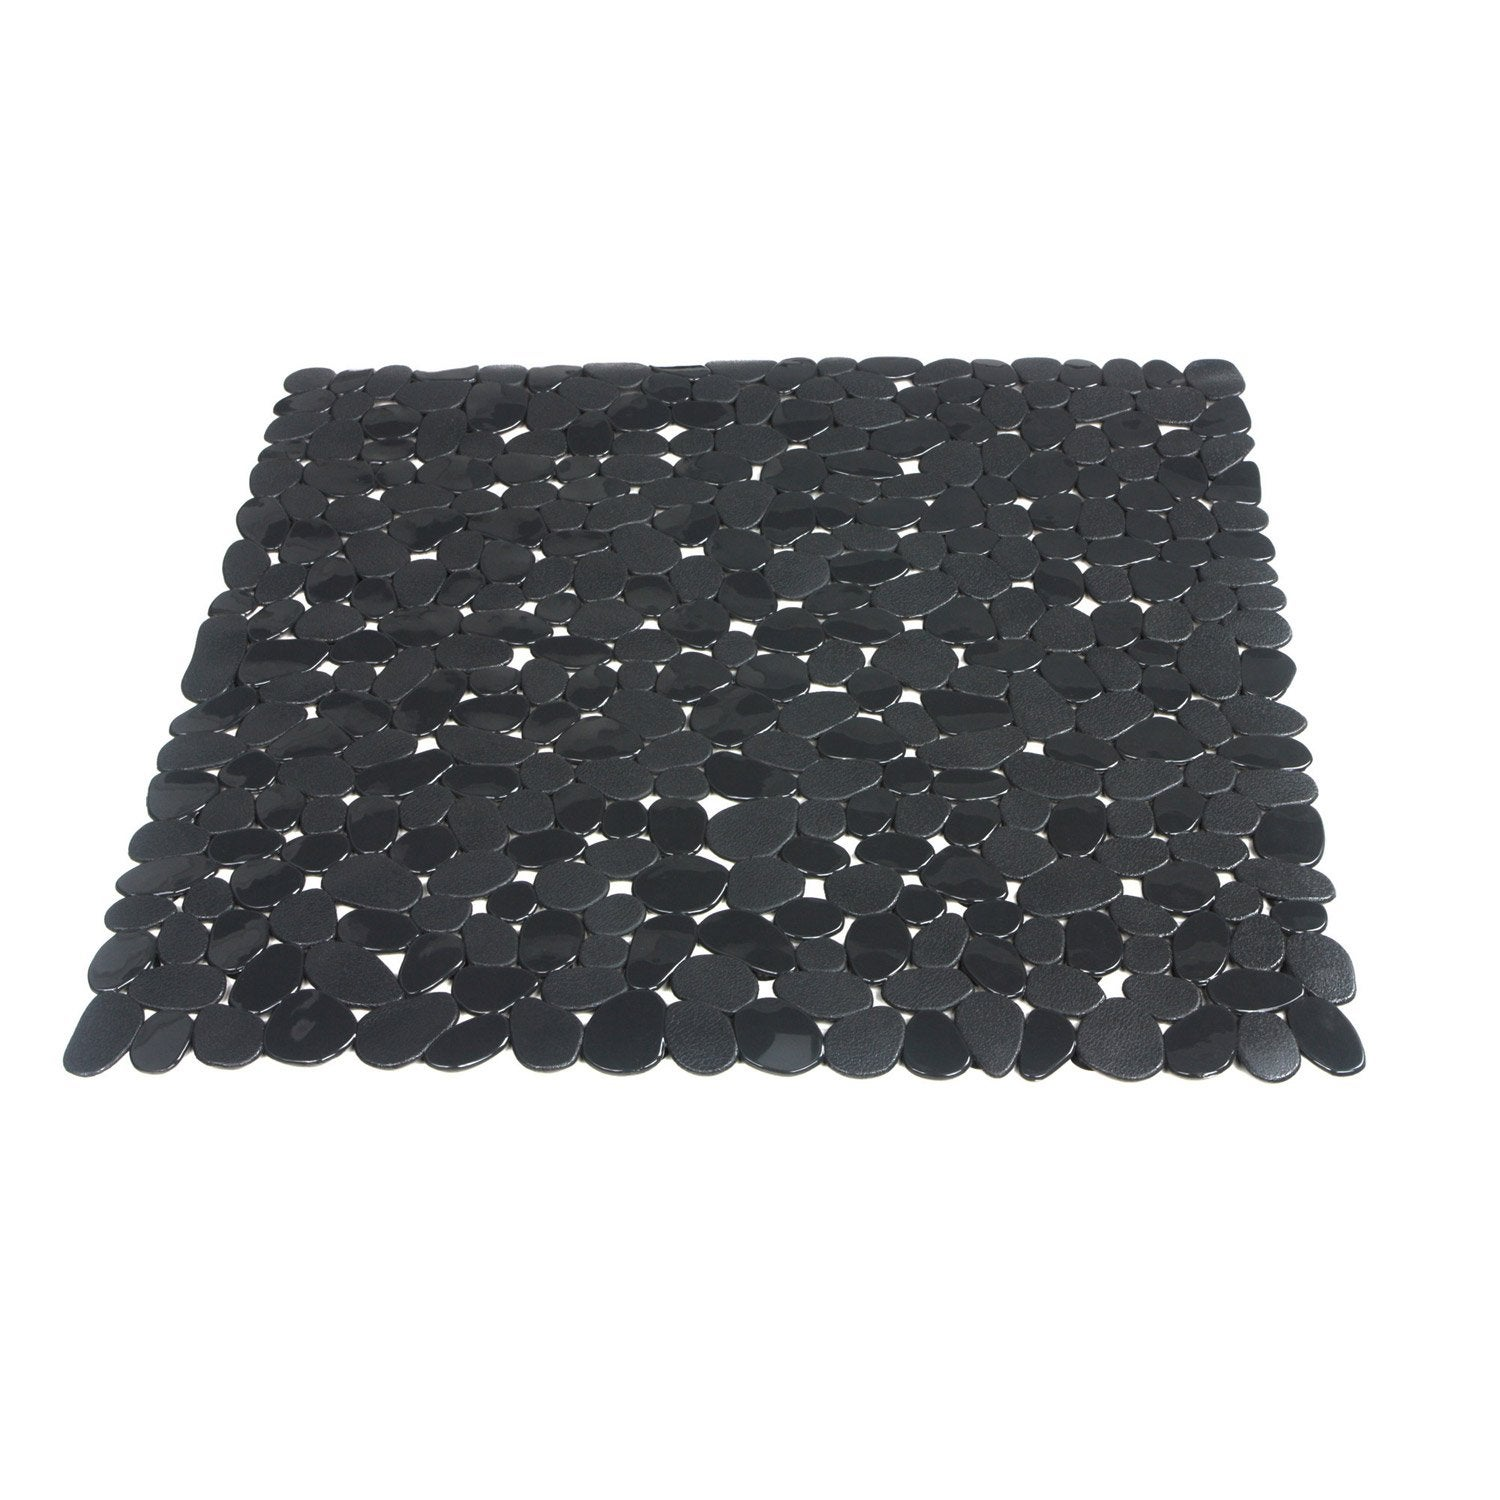 tapis antid rapant gris pour douche stone sensea leroy. Black Bedroom Furniture Sets. Home Design Ideas